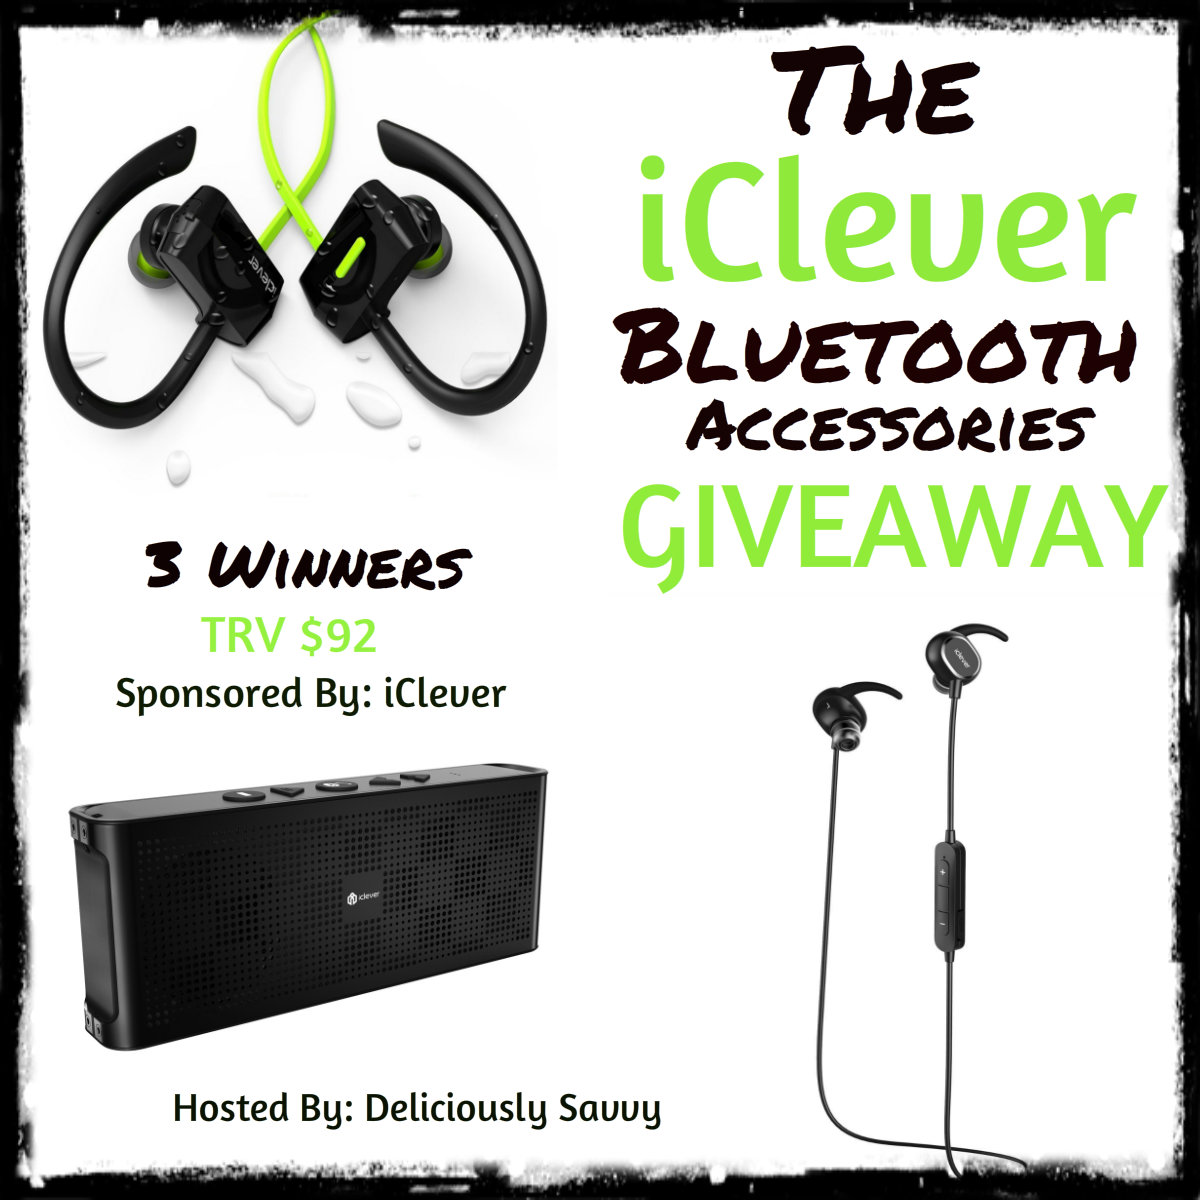 The iClever Bluetooth Accessories Giveaway